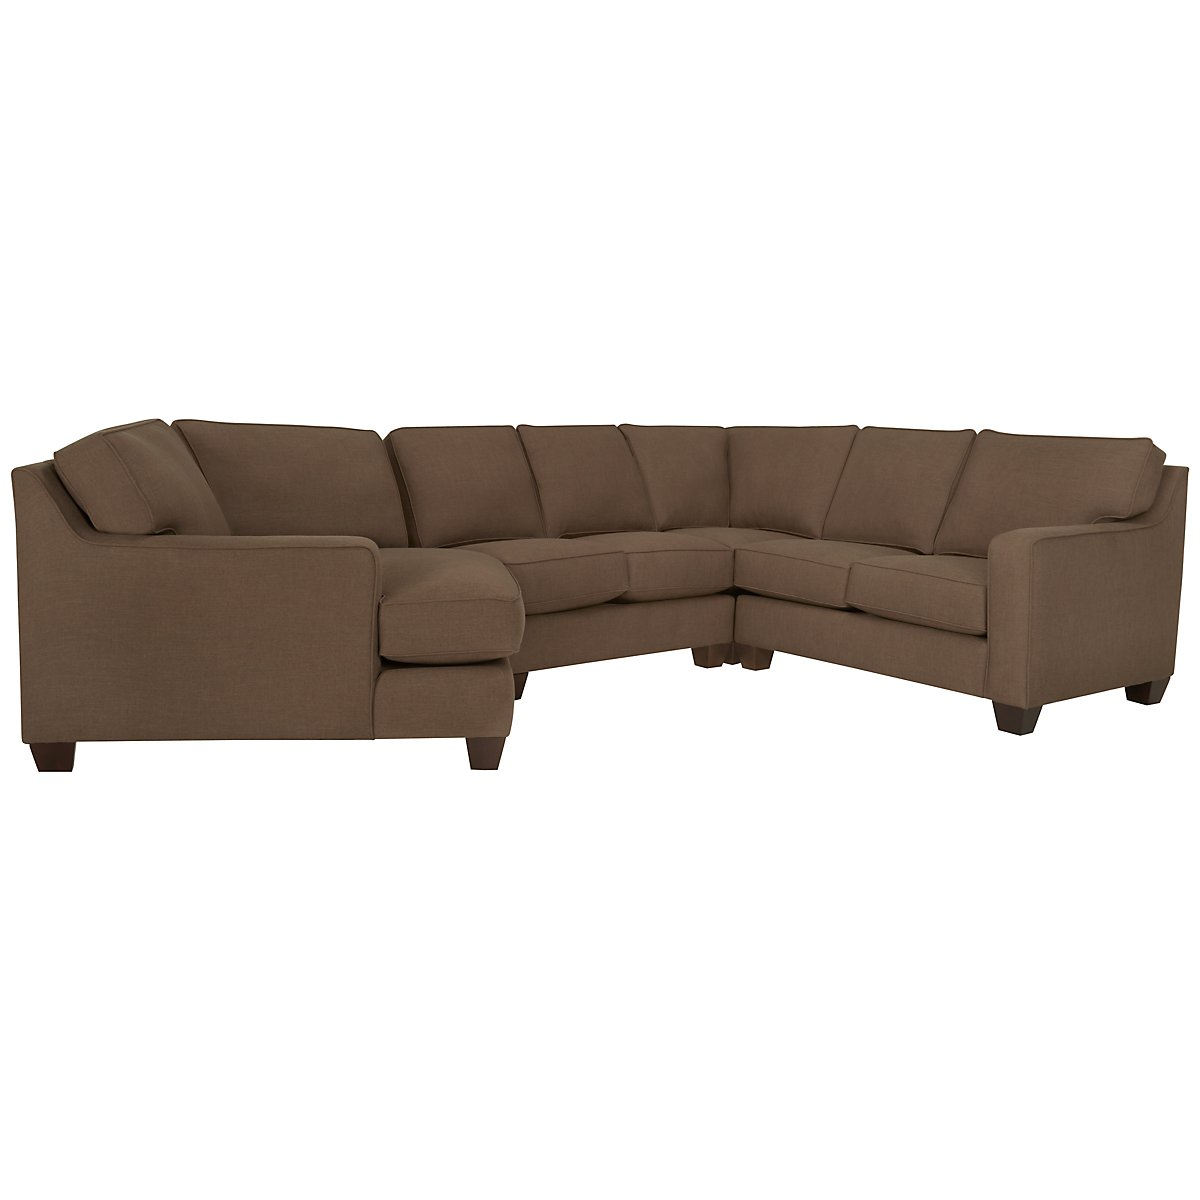 City furniture york dk brown fabric small left cuddler for Small sectional sofa with cuddler